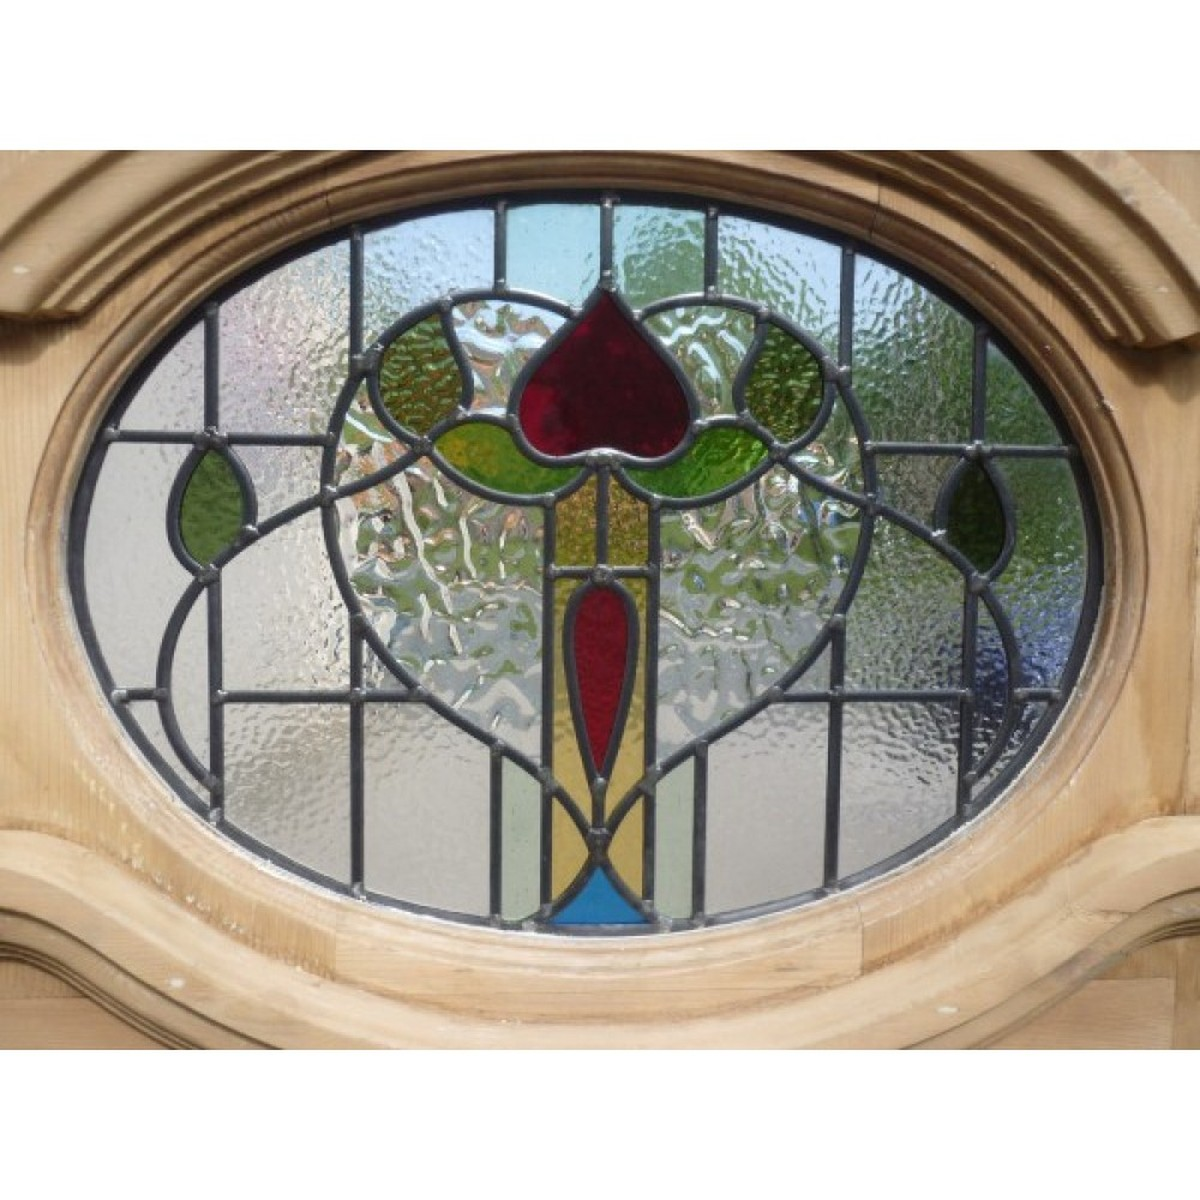 S Edwardian Oval Stained Glass